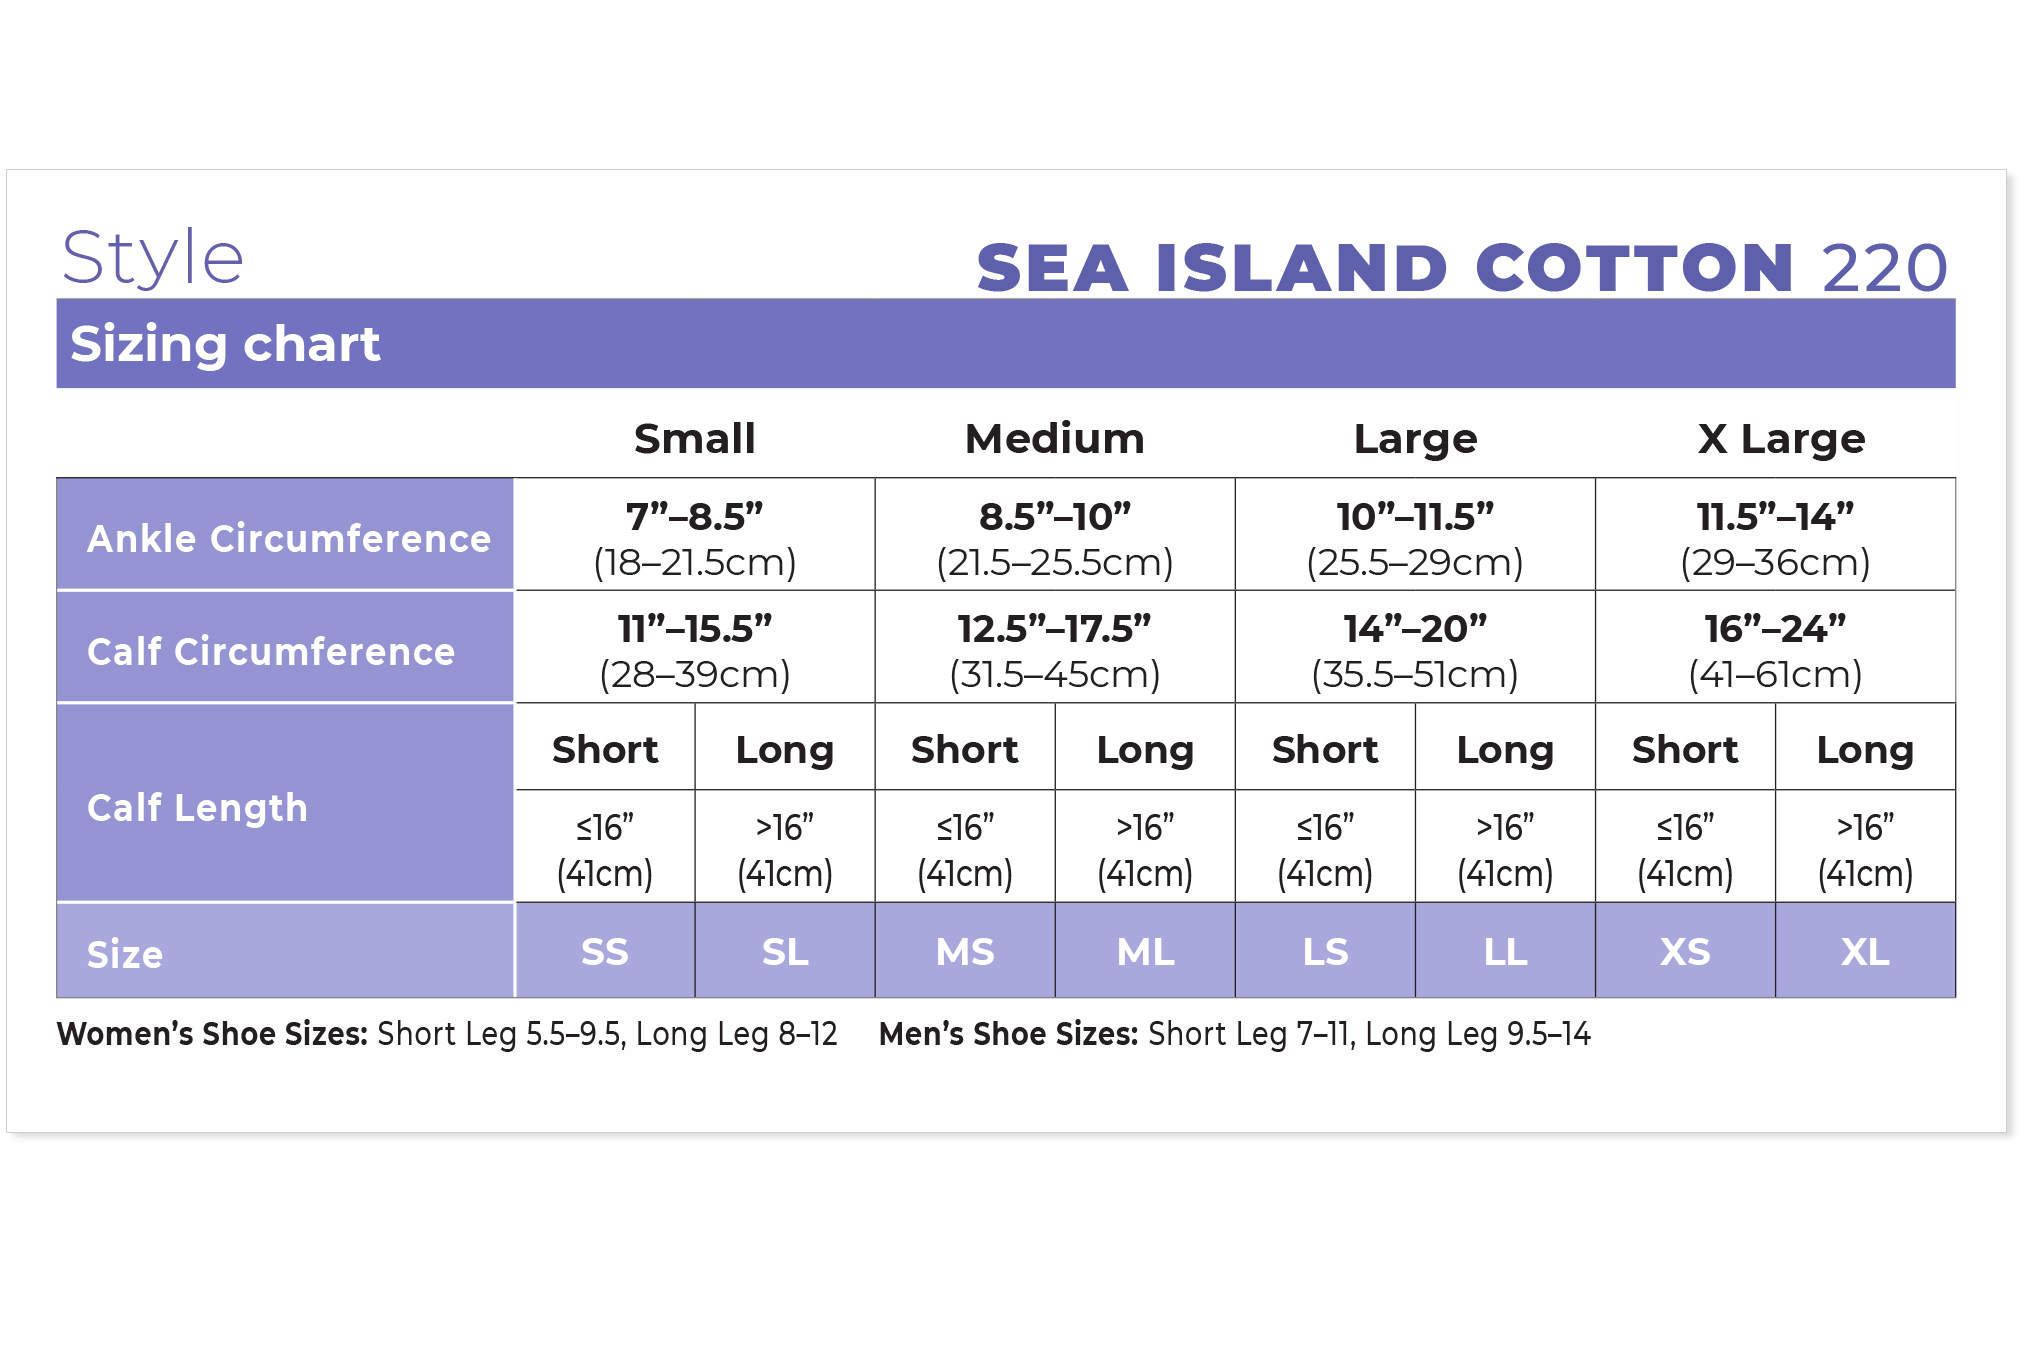 sea-island-cotton-15-20-size-chart.jpg